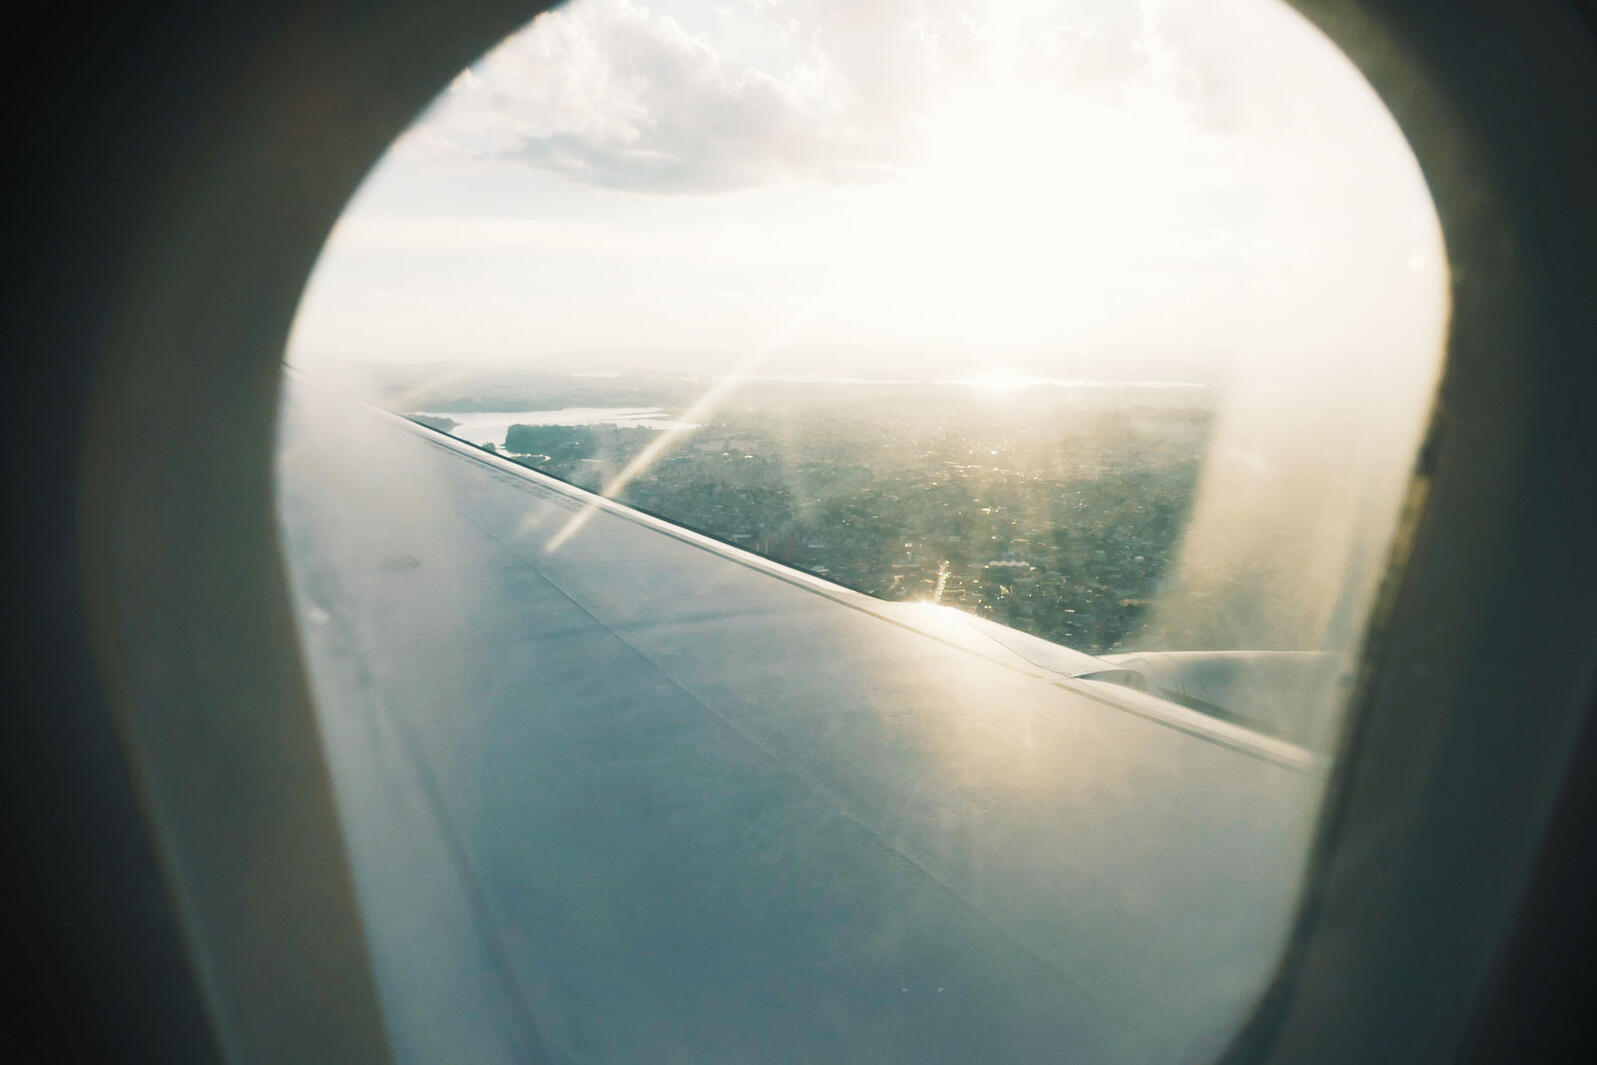 Plane-window sunset over Sao Paulo - and onwards to a new part of South America tomorrow! Noah Strycker